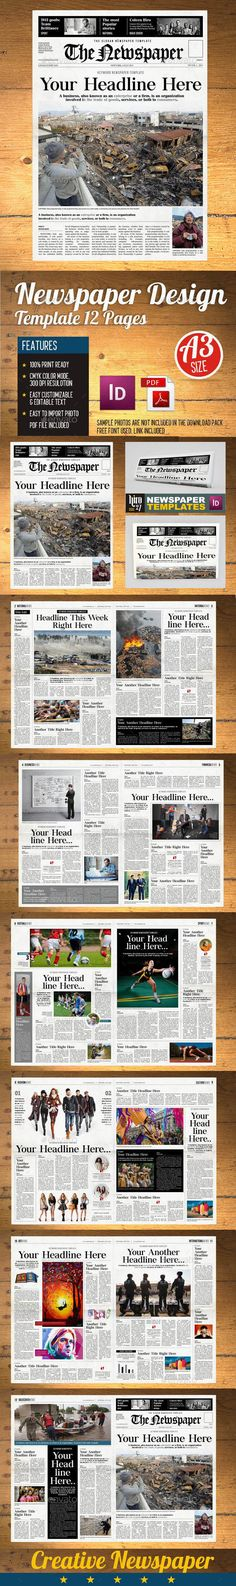 Newspaper Template For Adobe Indesign Cs  Home  Newspaper